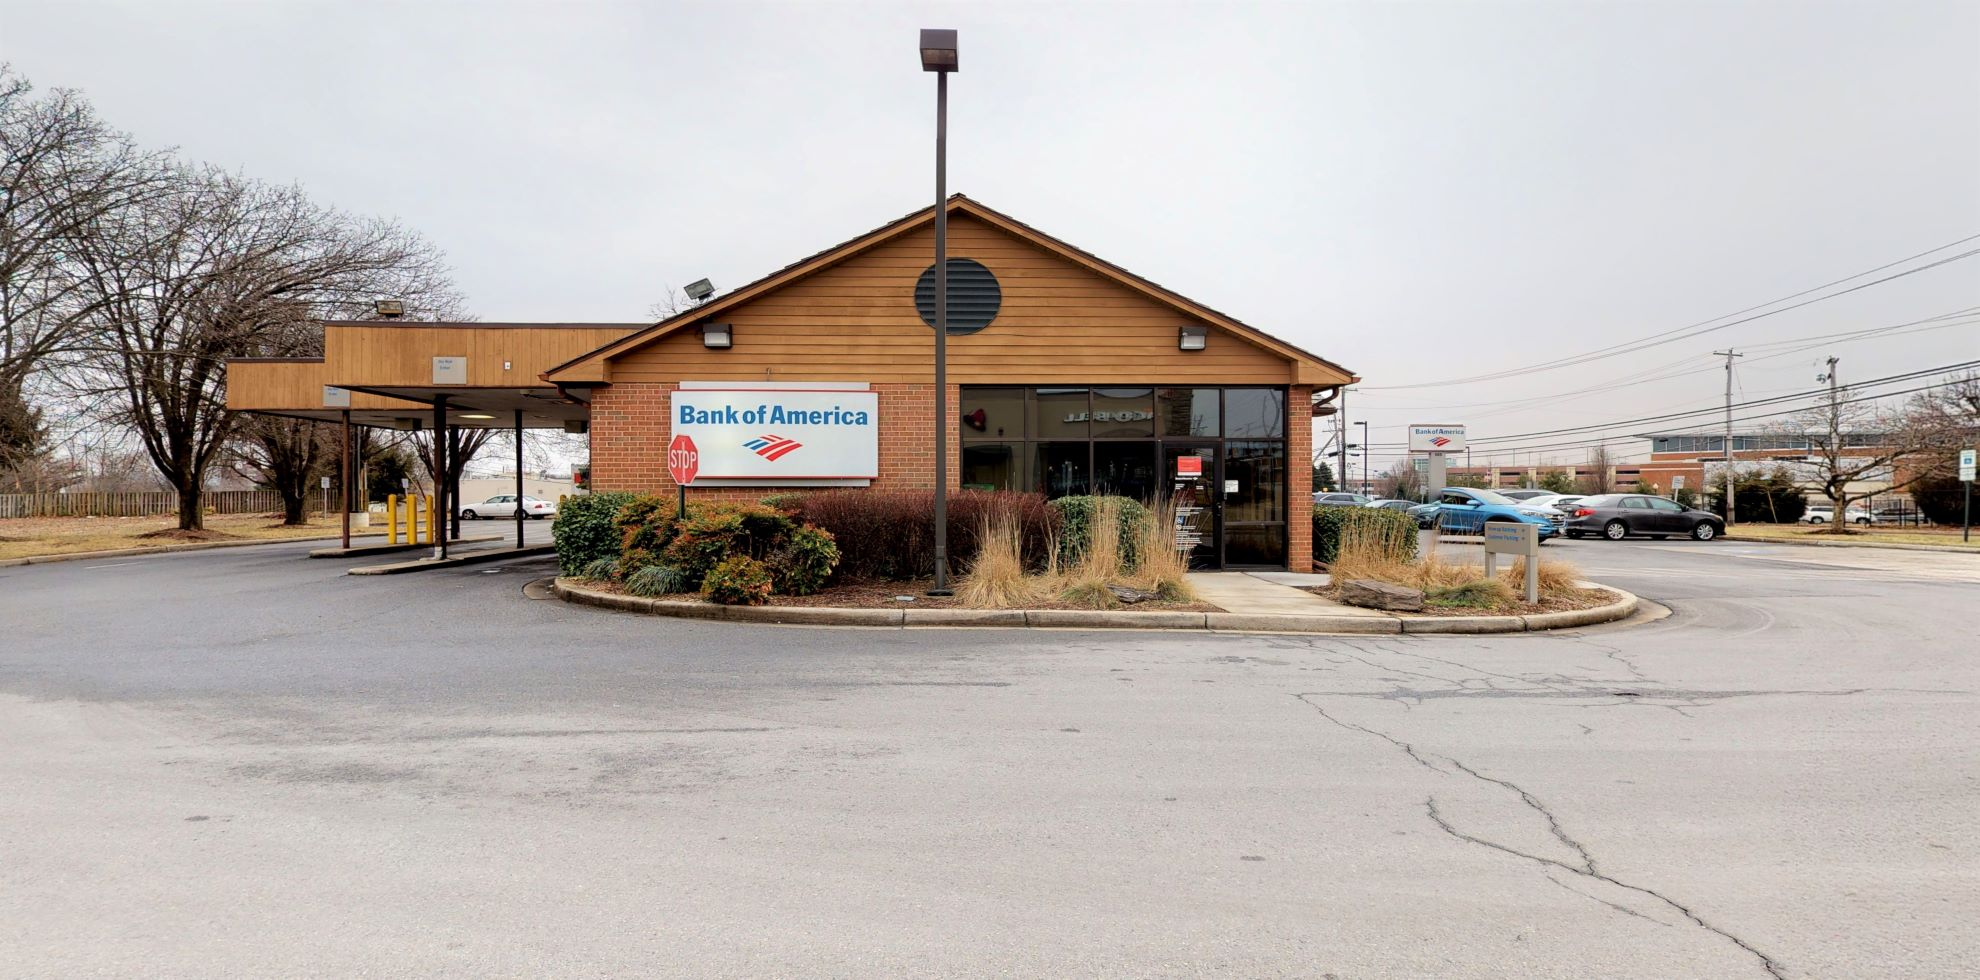 Bank of America financial center with drive-thru ATM | 805 W 7th St, Frederick, MD 21701